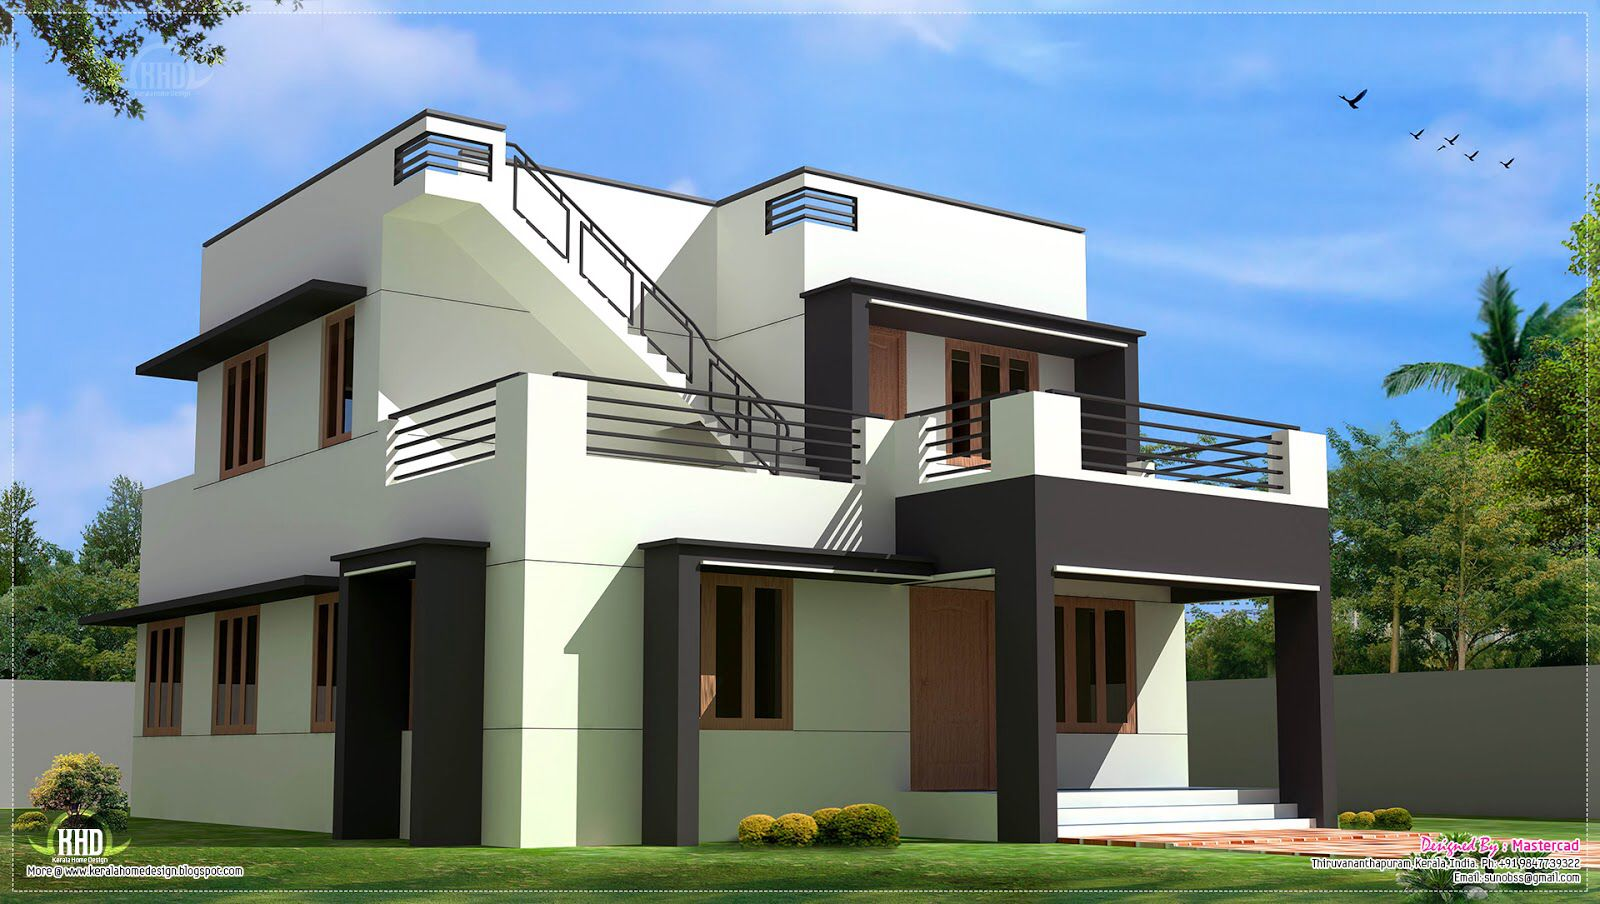 Prime 17 Best Images About Beautiful Indian Home Designs On Pinterest Largest Home Design Picture Inspirations Pitcheantrous